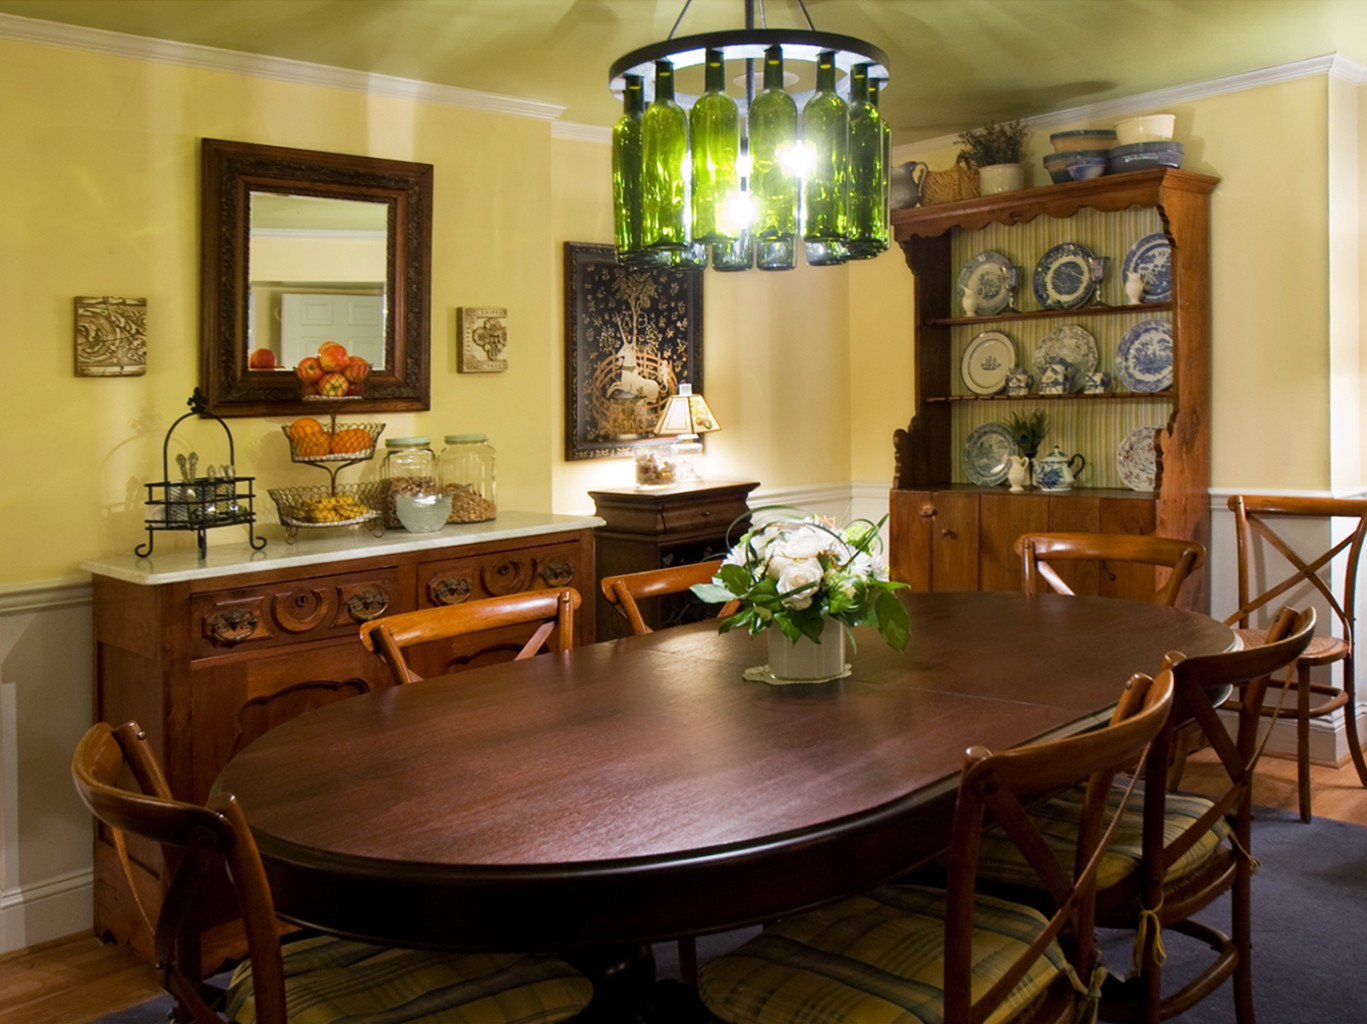 B&B City Dining Drink Eat property cabinetry home hardwood Kitchen living room cottage dining table